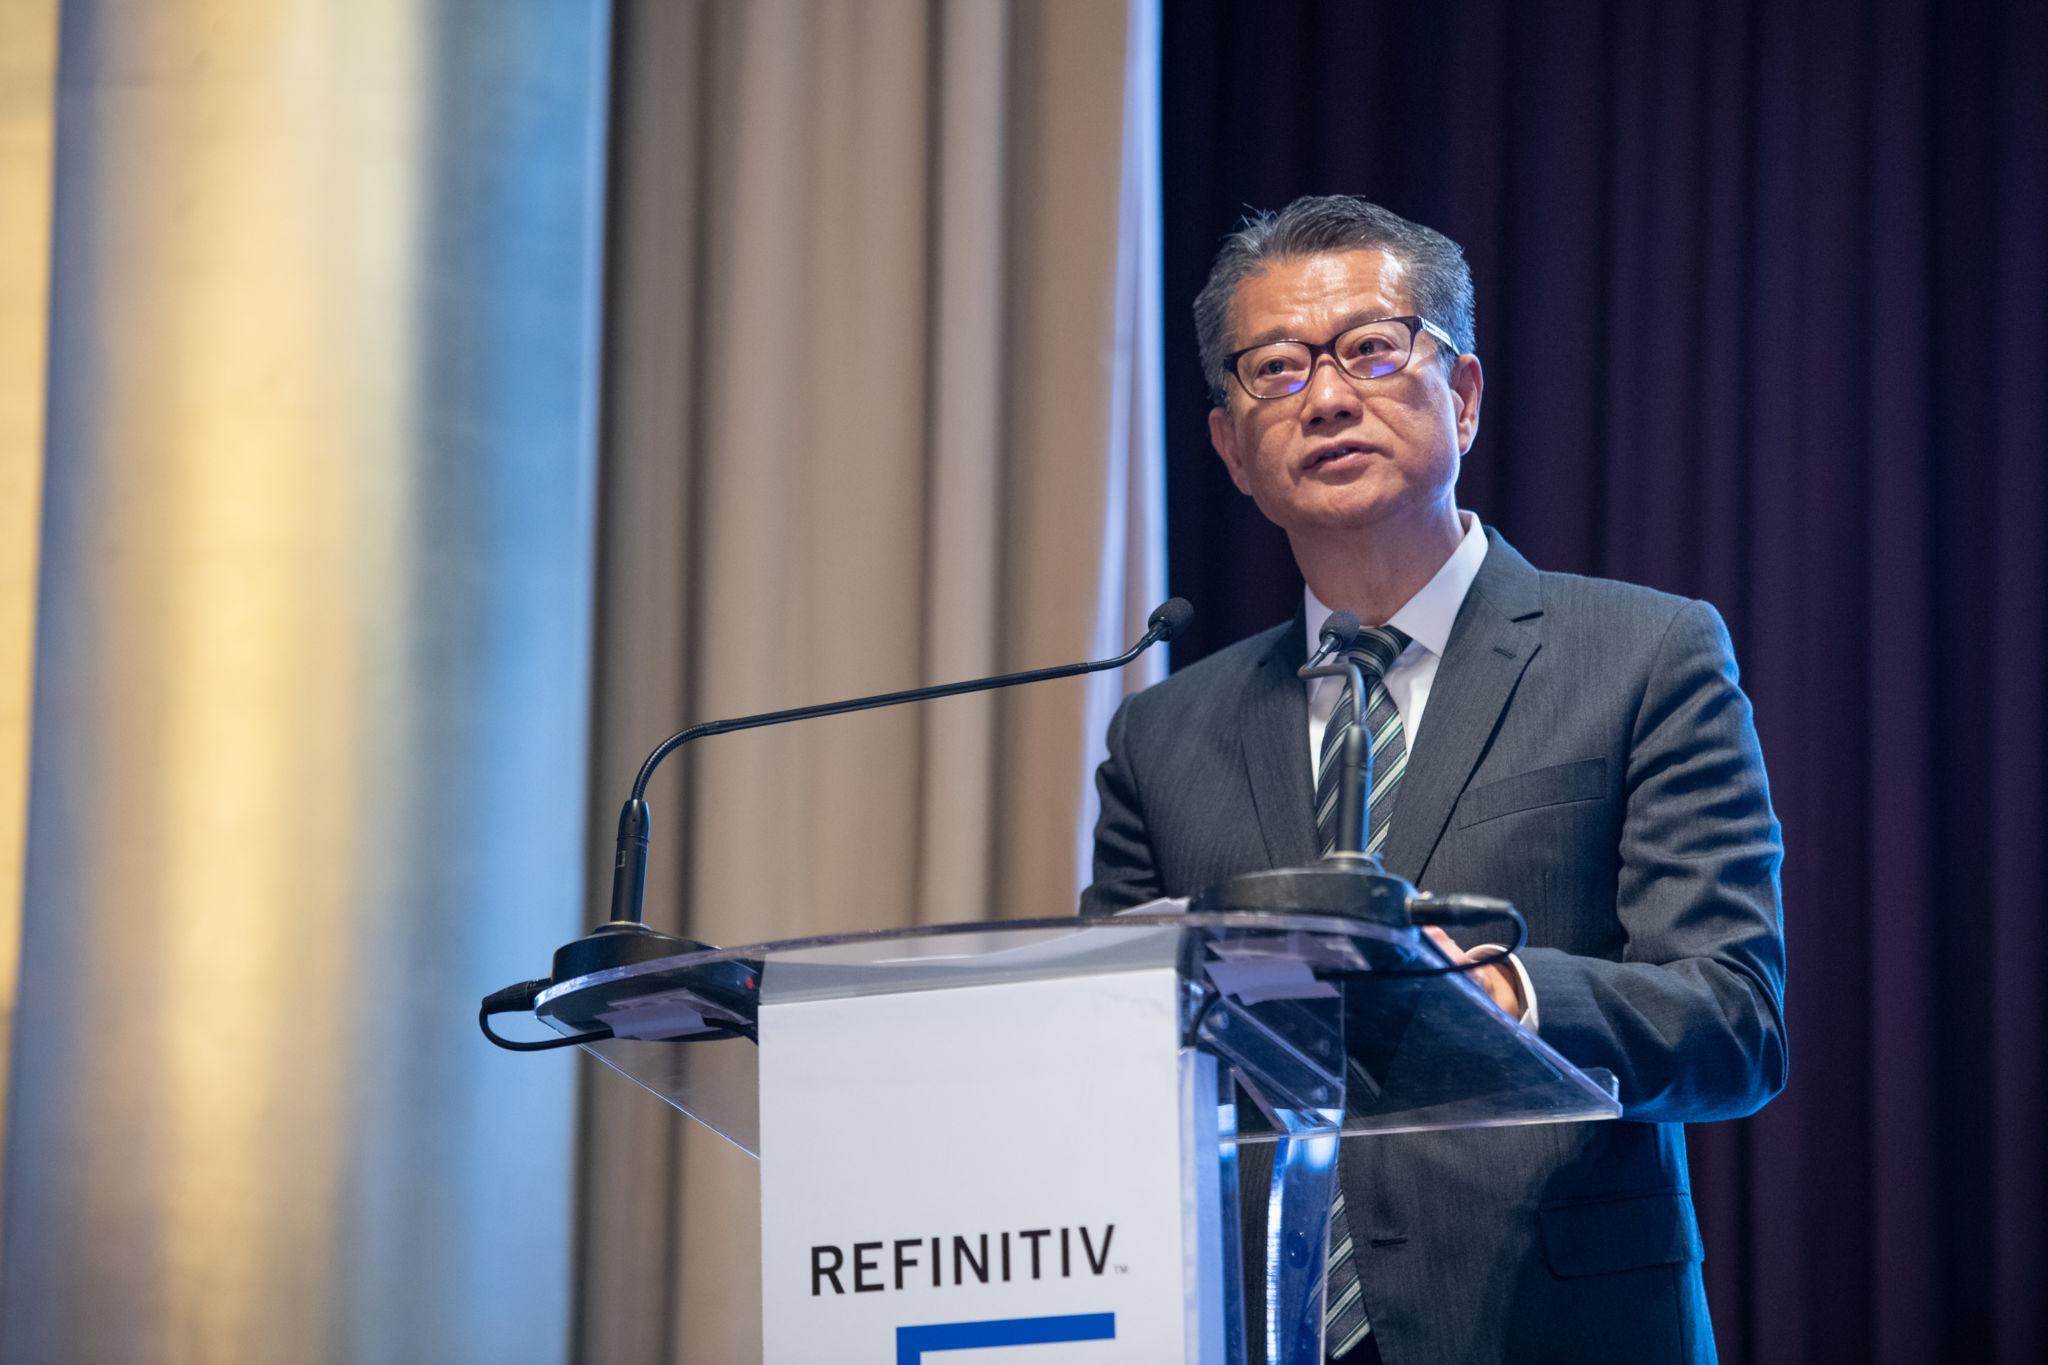 Paul Chan Mo-po, GBM, GBS, MH, JP, Financial Secretary, HKSAR, giving an opening keynote at the 2018 Refinitiv Pan Asian Regulatory Summit